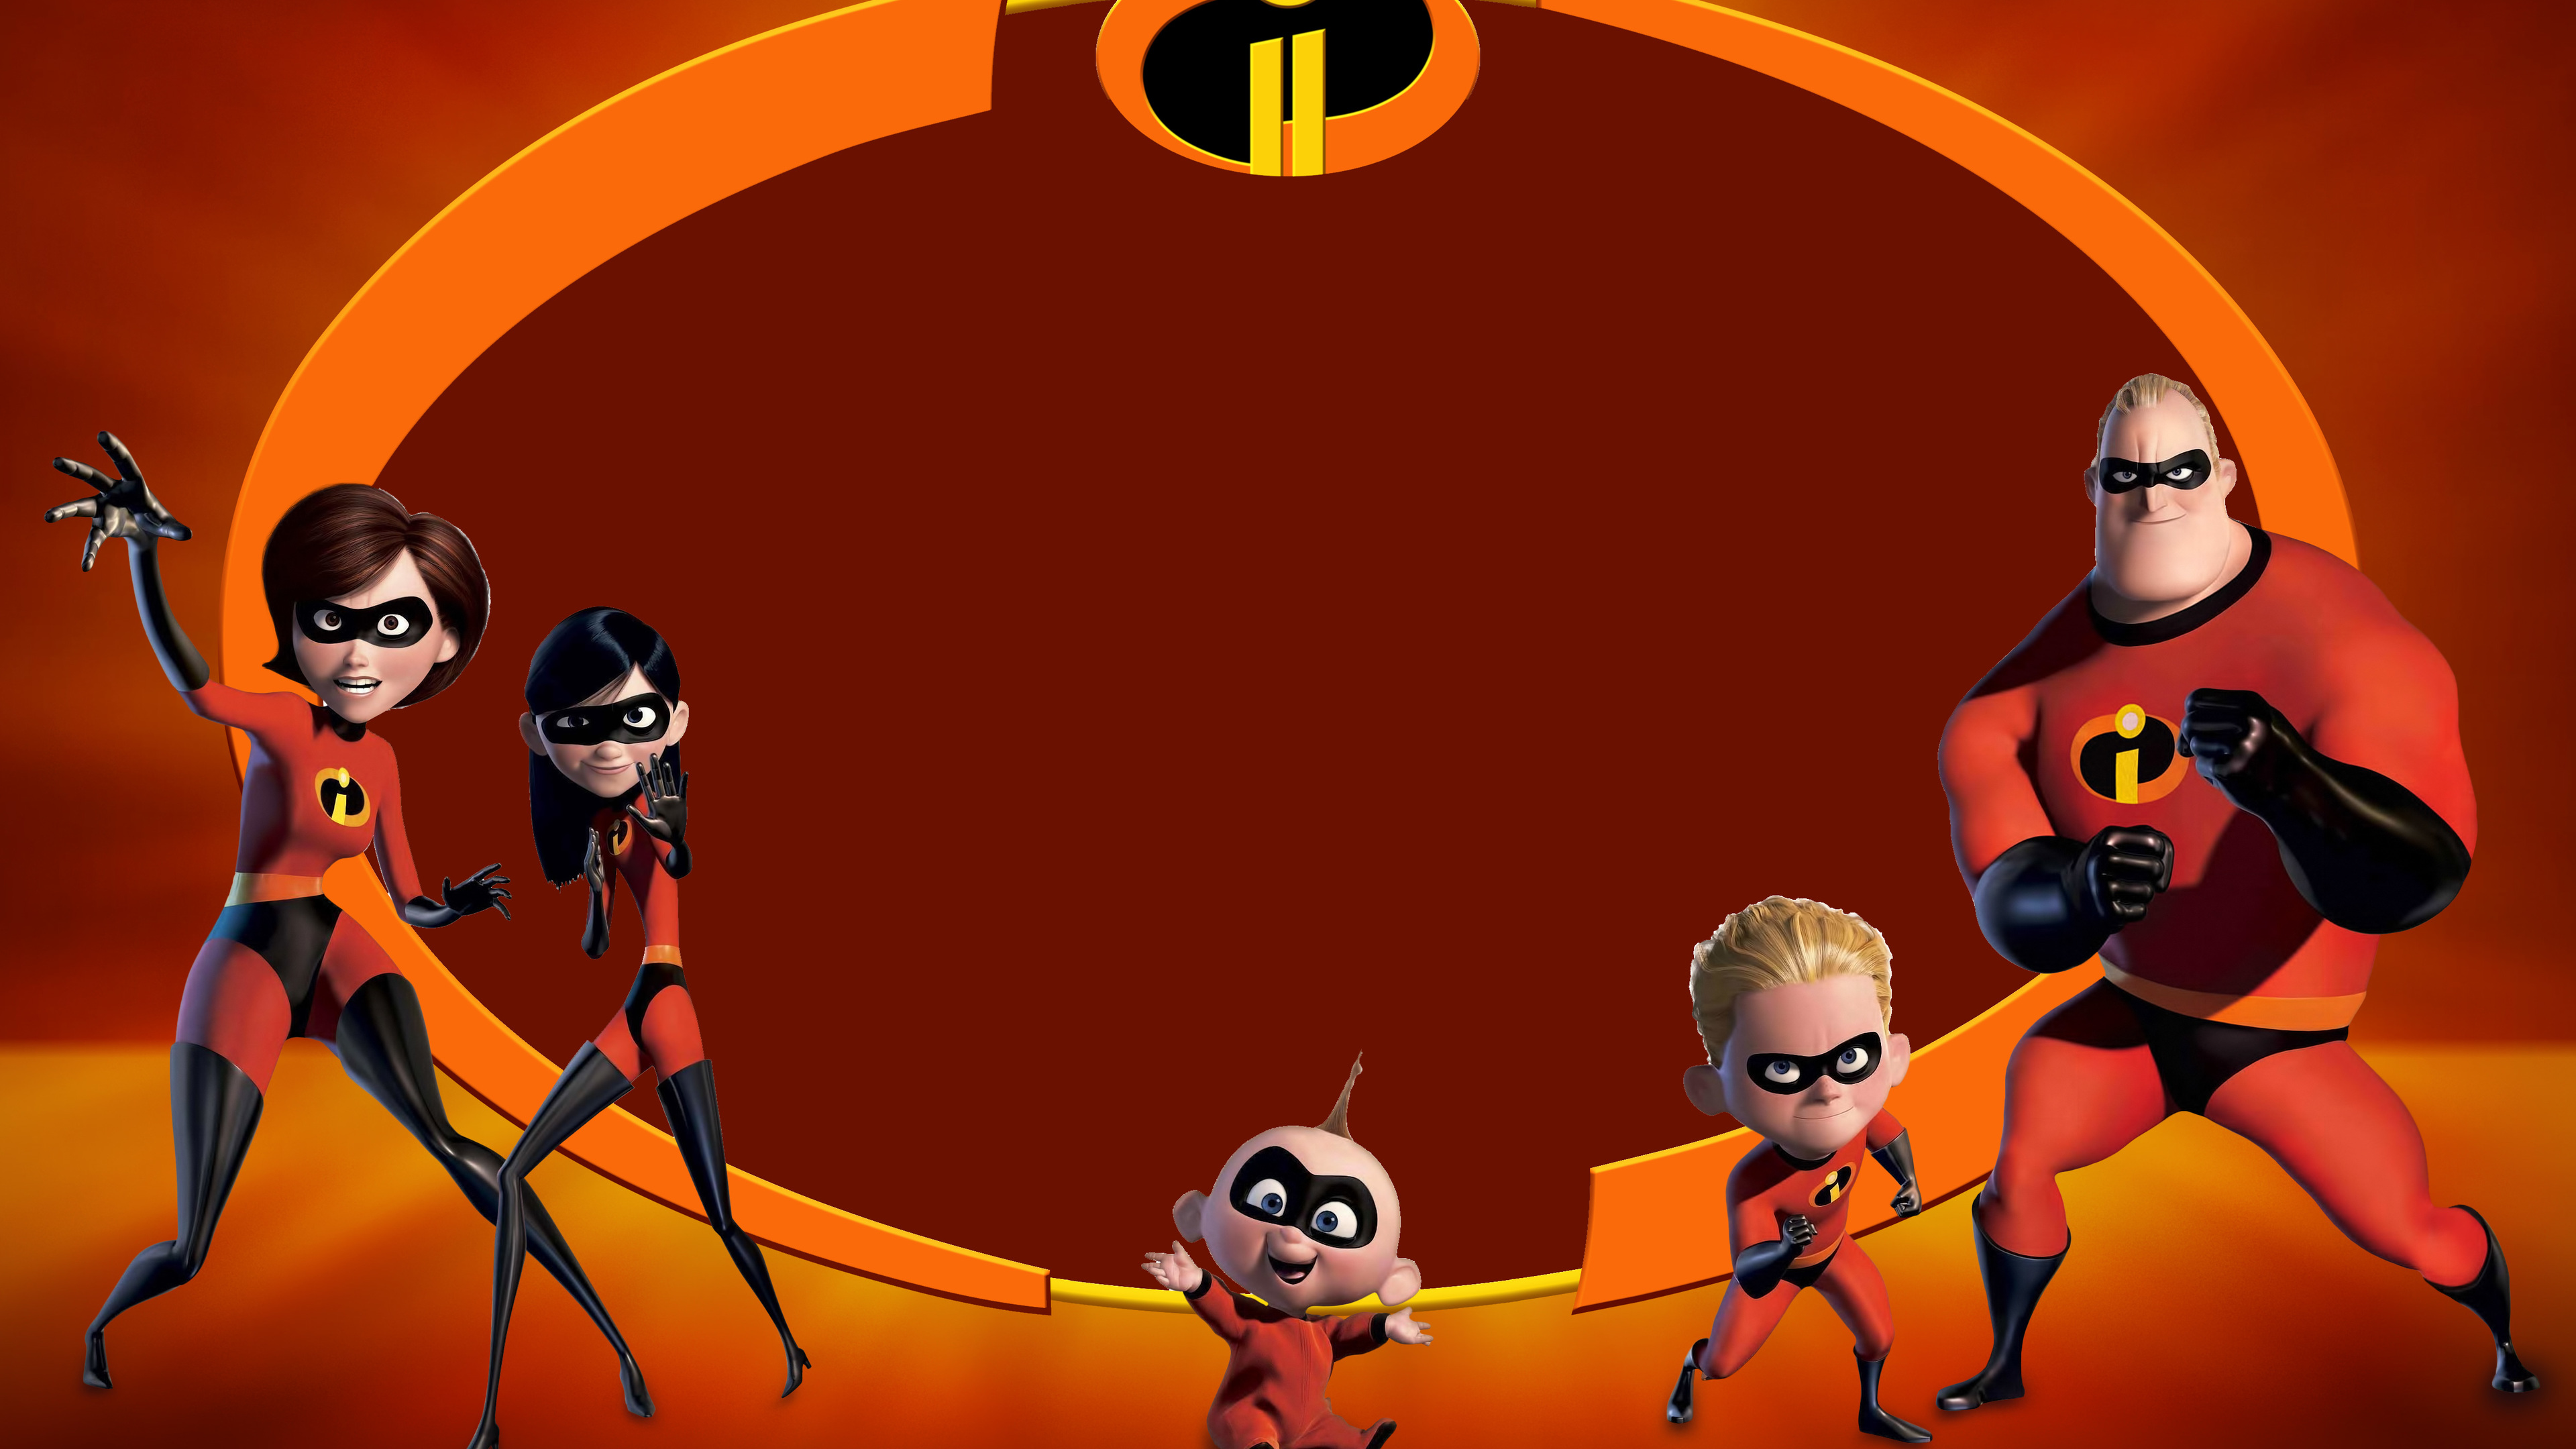 the incredibles 2 5k movie 1537645118 - The Incredibles 2 5k Movie - the incredibles 2 wallpapers, movies wallpapers, hd-wallpapers, animated movies wallpapers, 5k wallpapers, 4k-wallpapers, 2018-movies-wallpapers